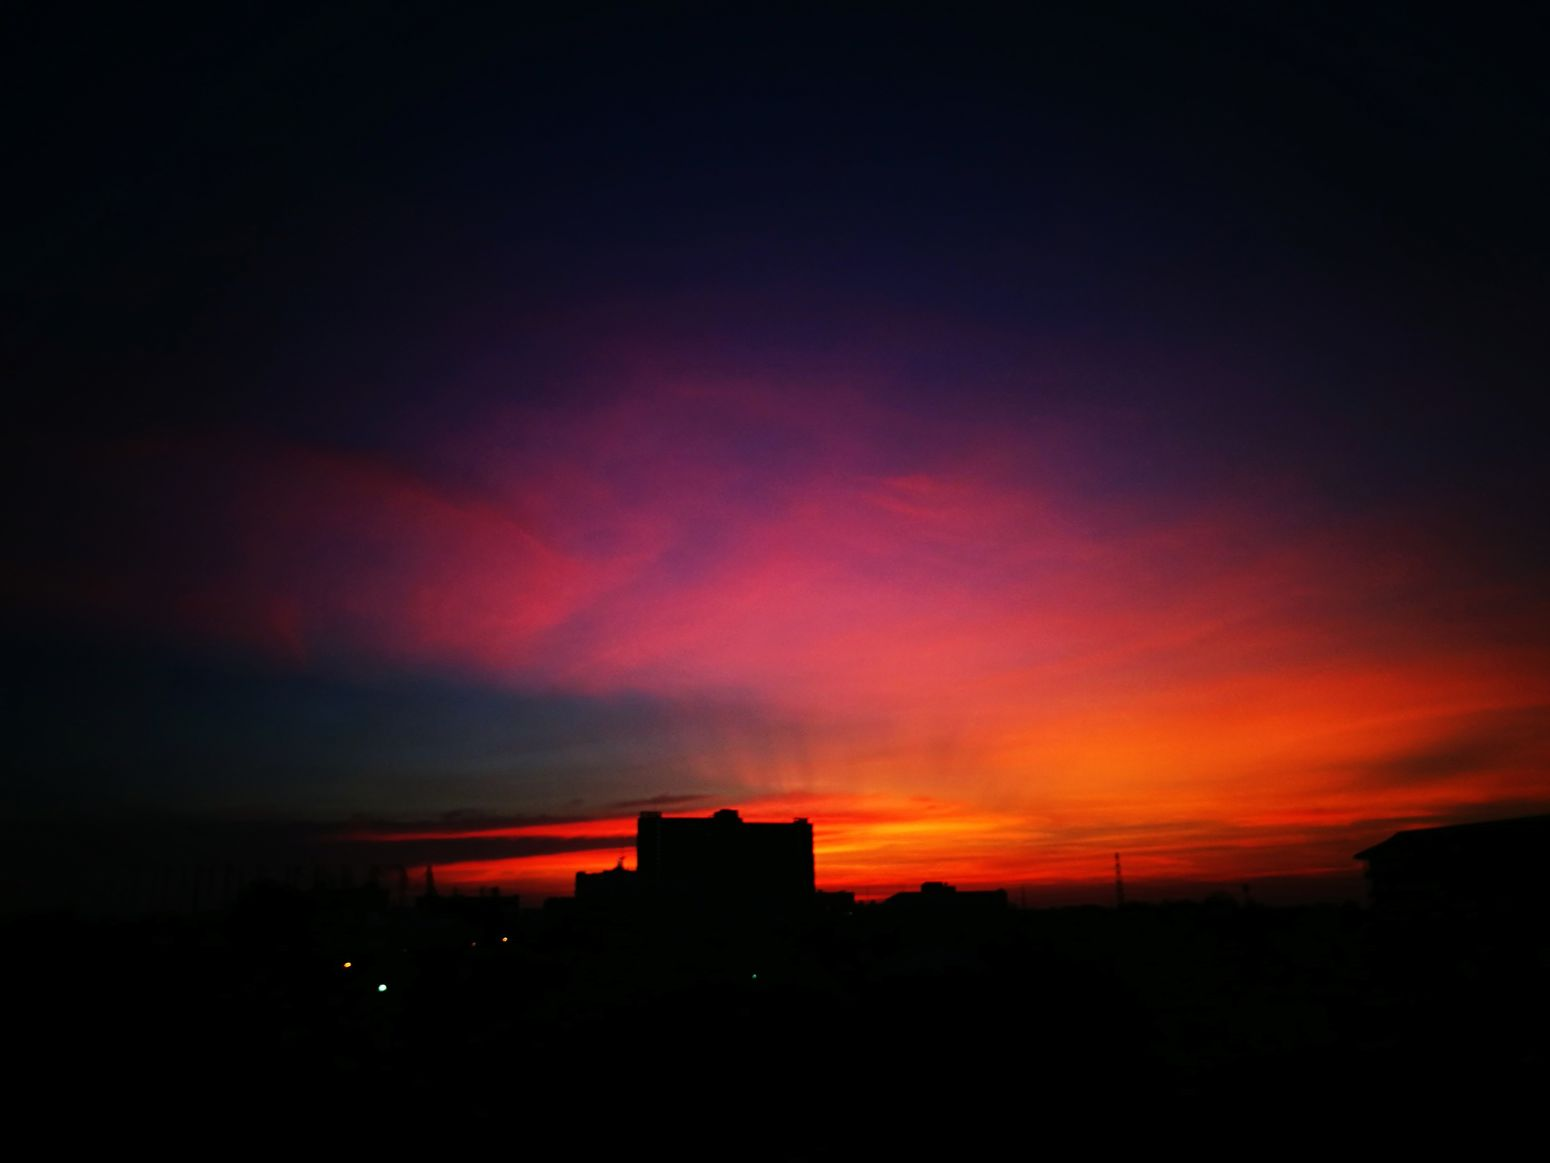 Silhouette Red Nature No People Built Structure Scenics City Sky Architecture Beauty In Nature Skylovers Nature Photography Night Outdoors